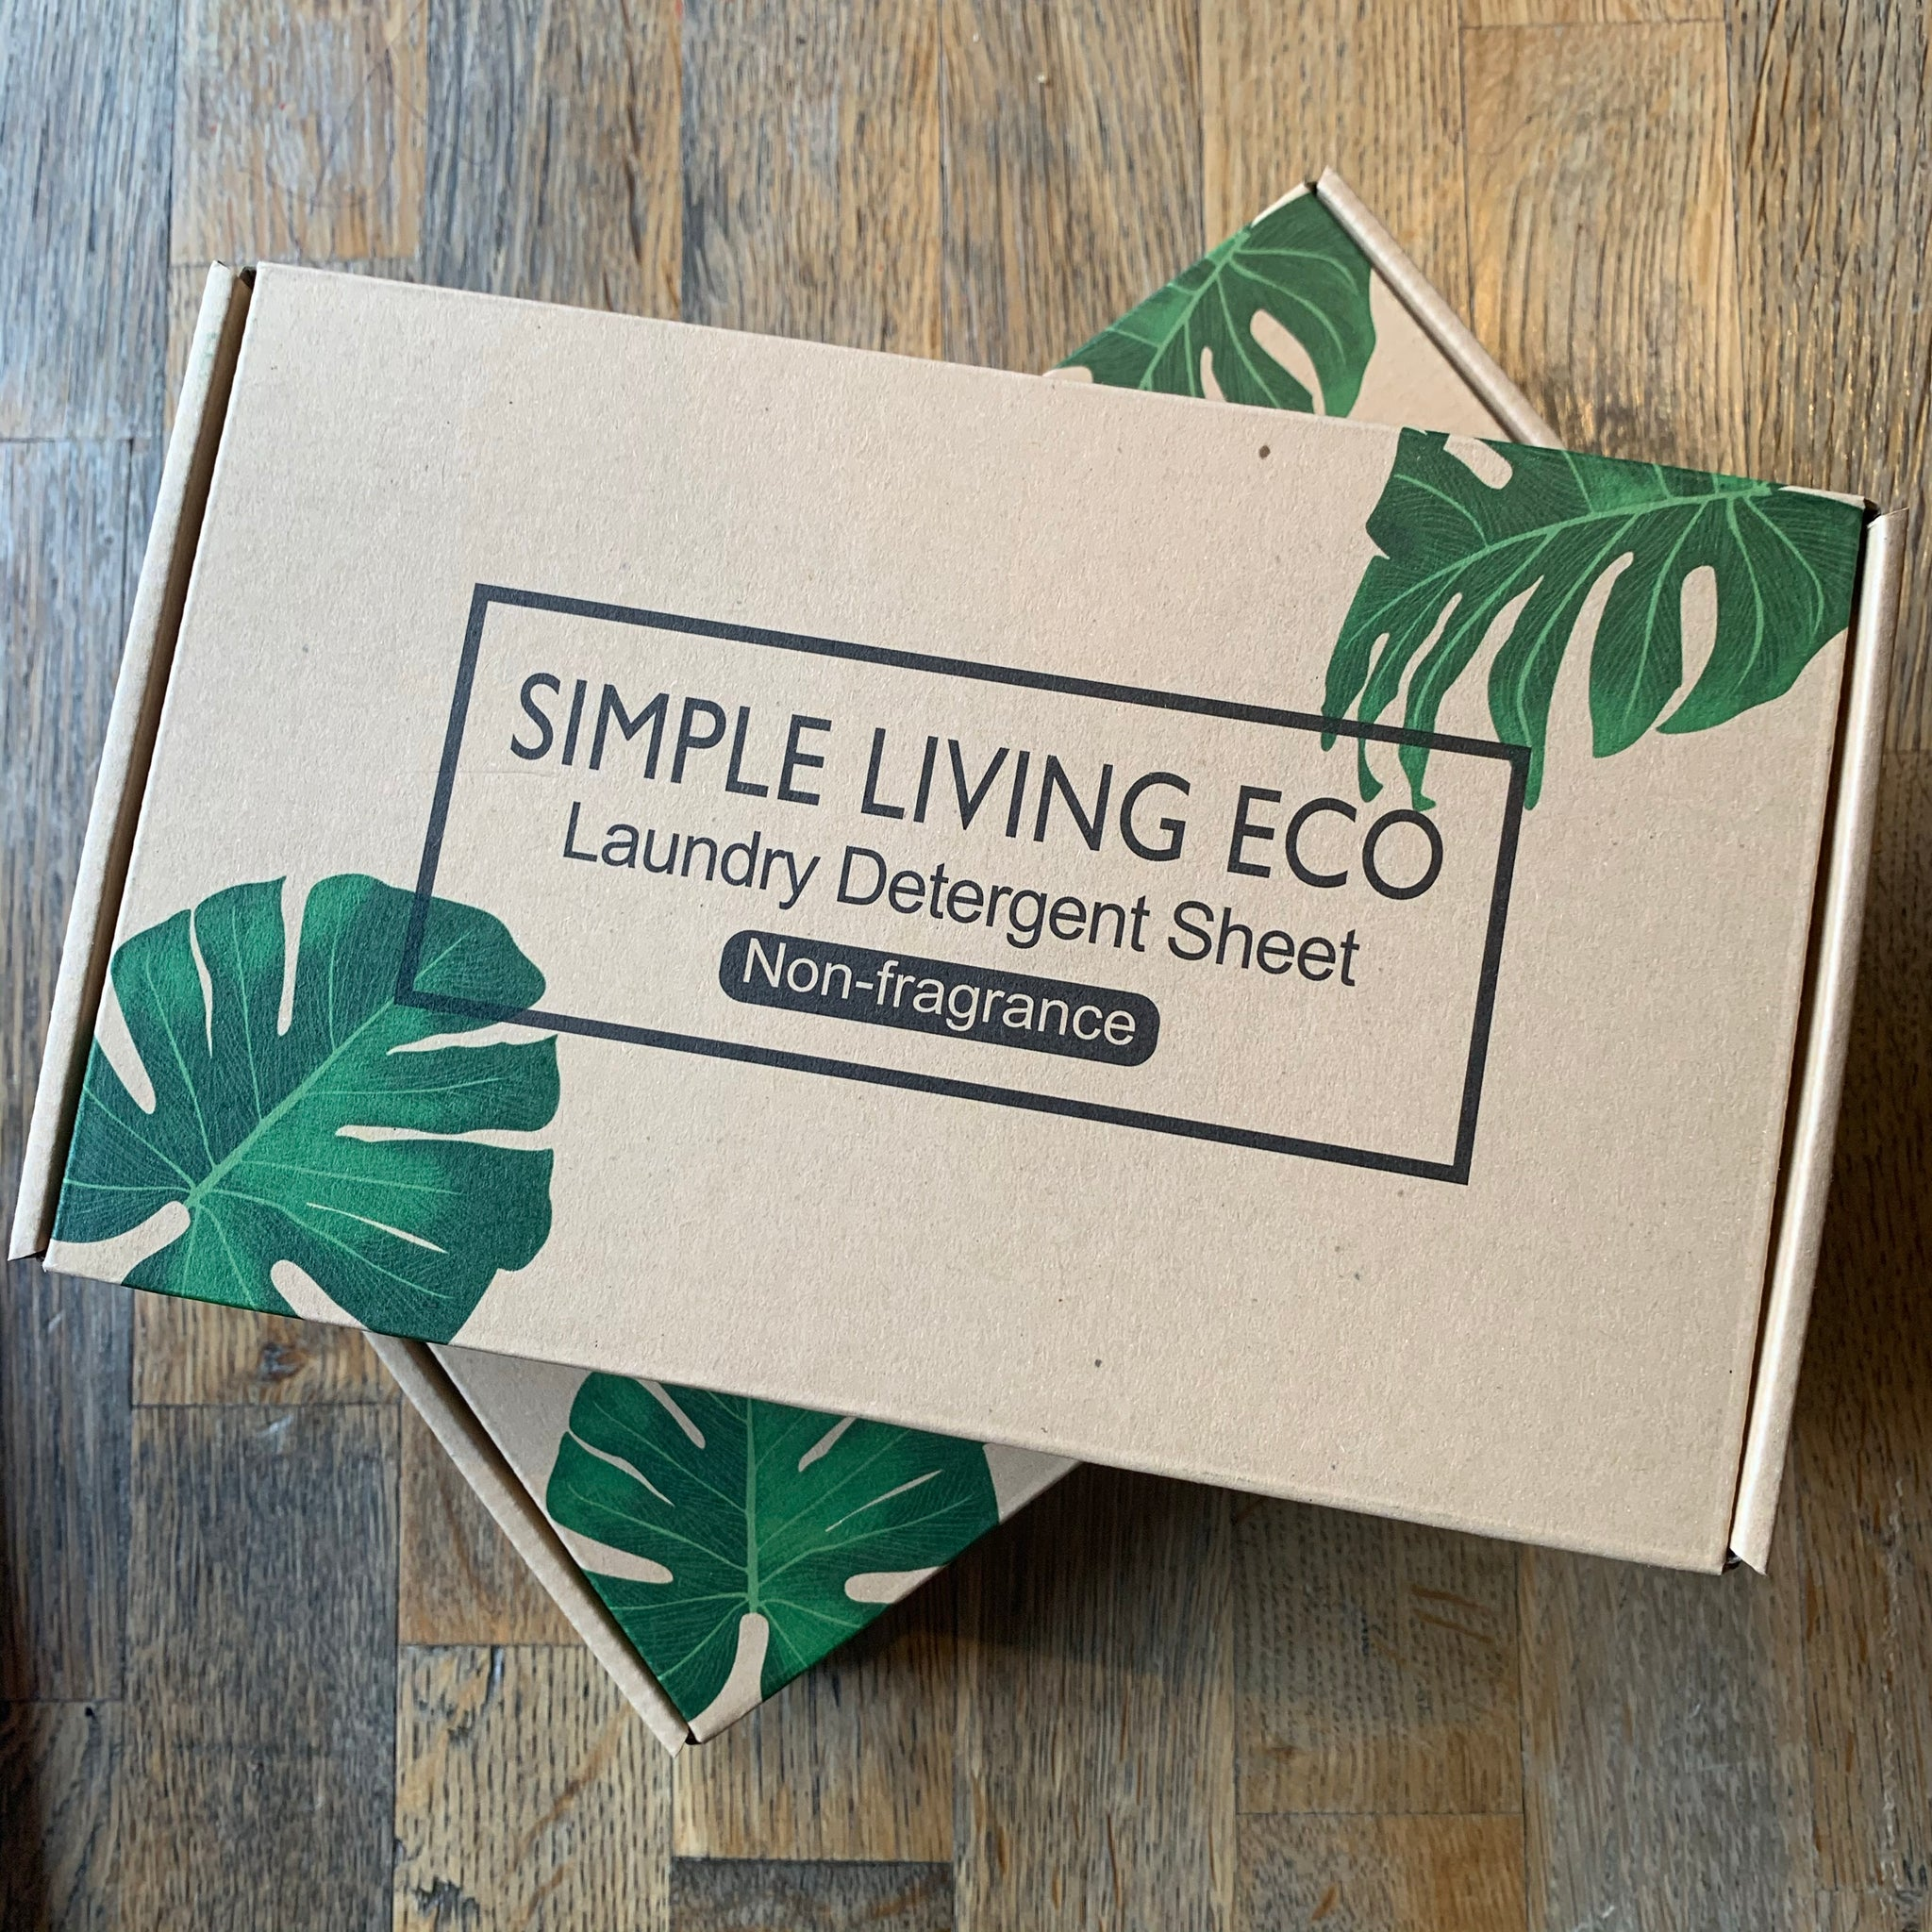 Simple Living Eco - laundry detergent sheets